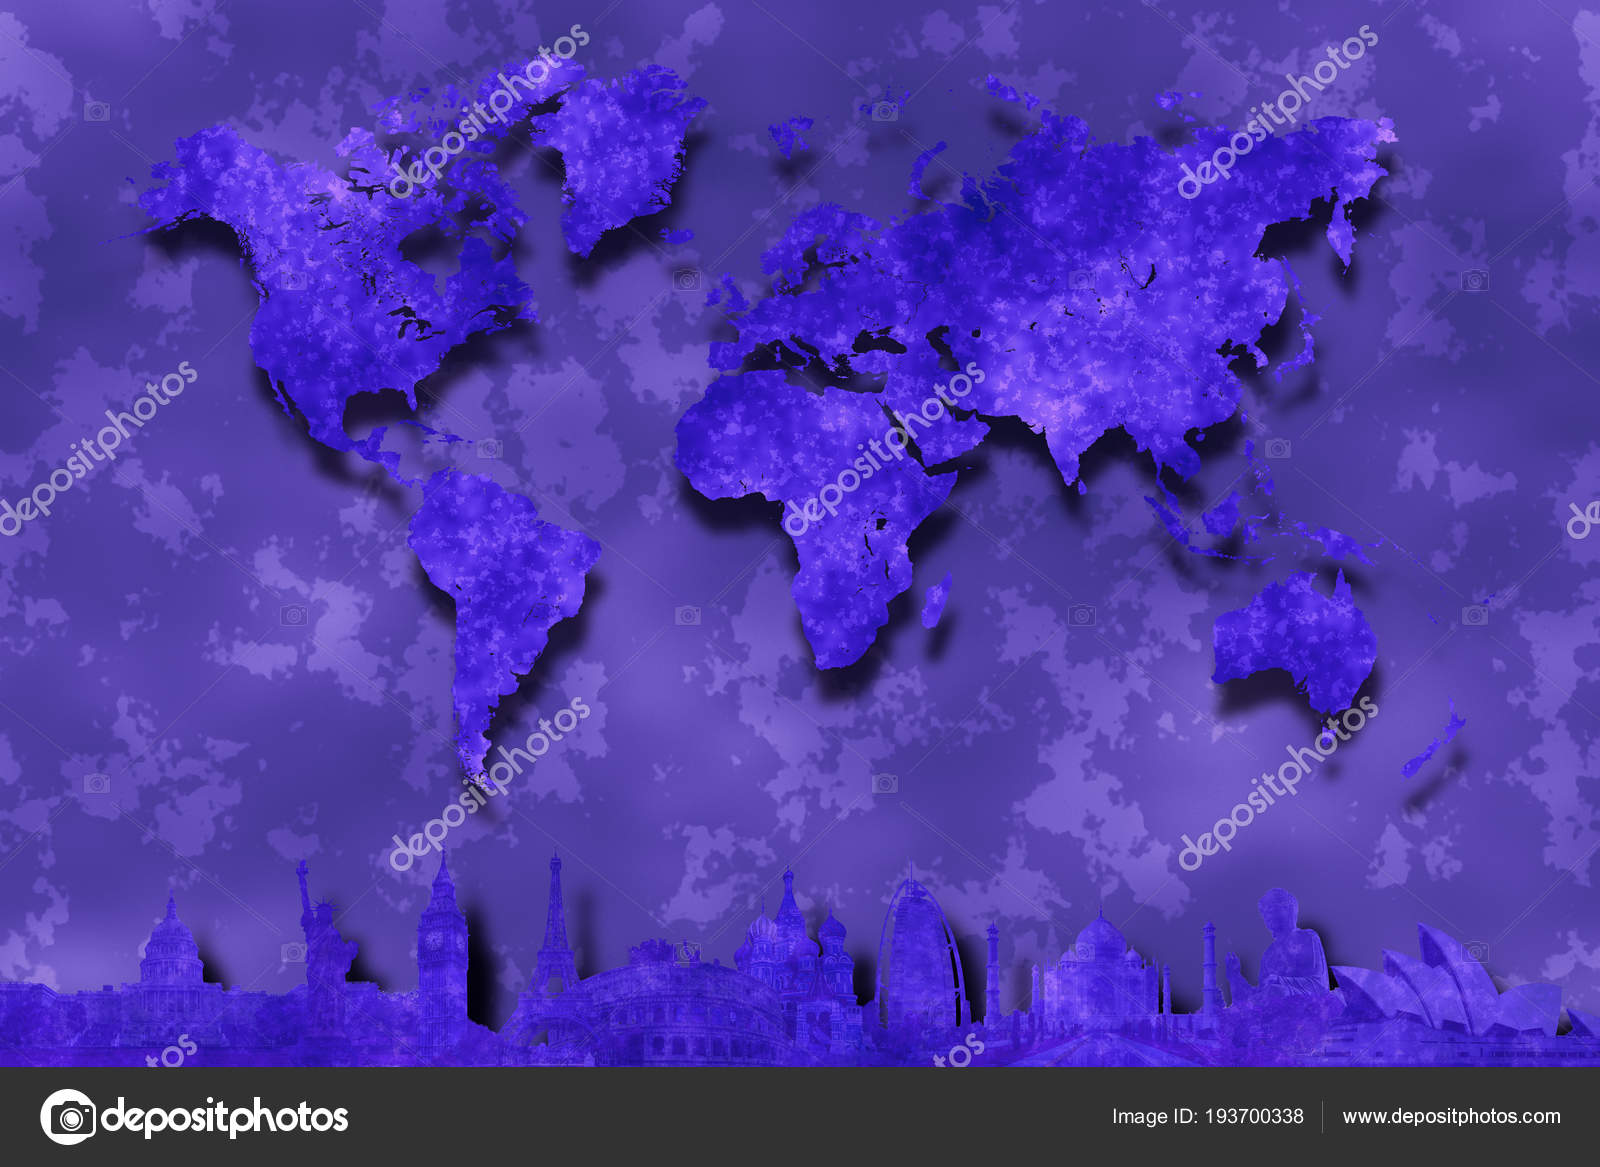 Purple world map abstract background silhouettes famous world purple world map on abstract background with silhouettes of famous world landmarks from washington new york london paris rome moscow dubai agra gumiabroncs Image collections